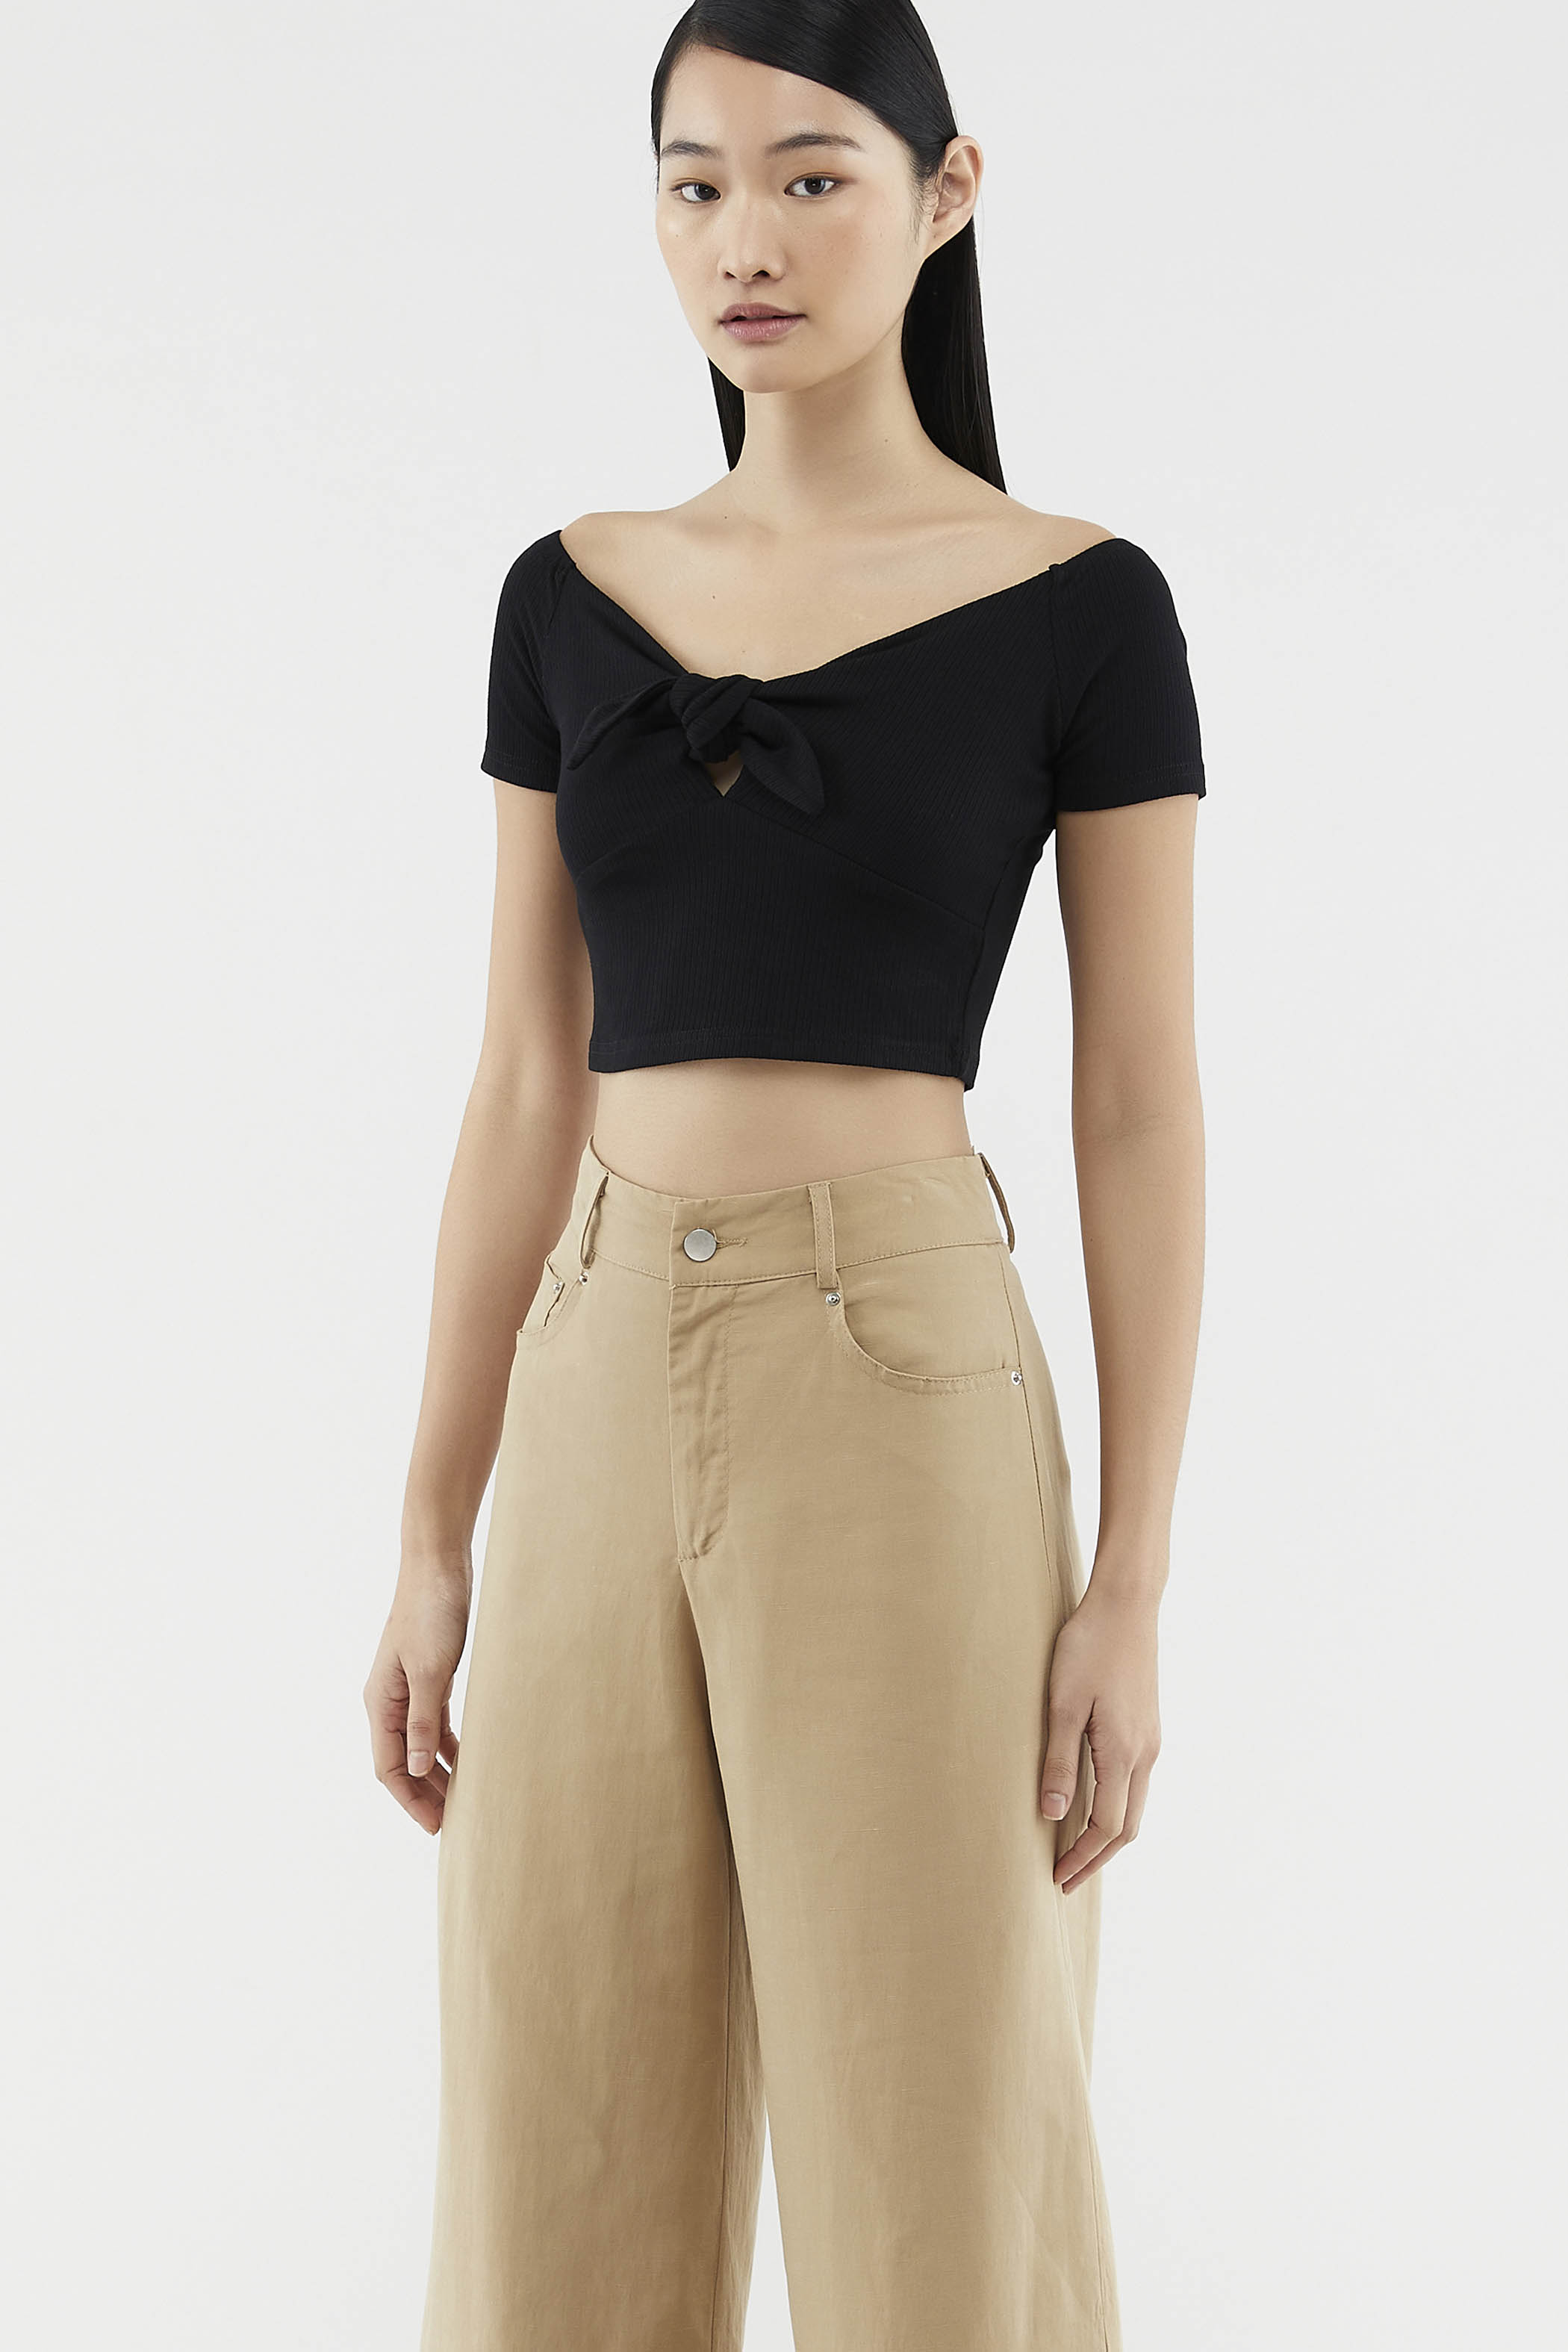 Cordelia Knotted Crop Top